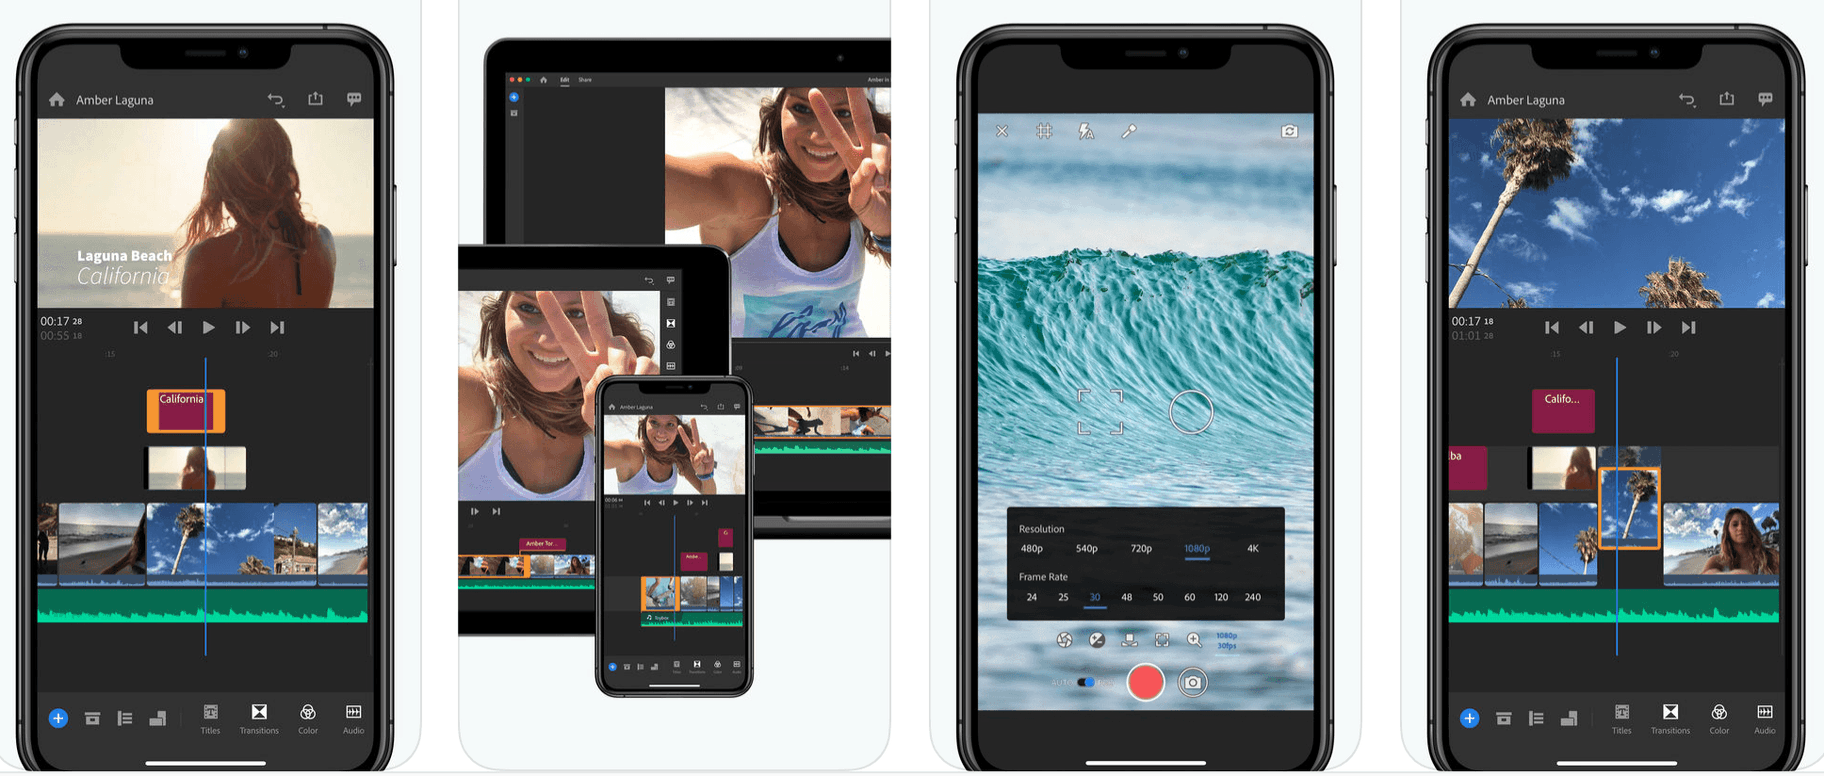 Premiere Rush - Instagram Video Editor App